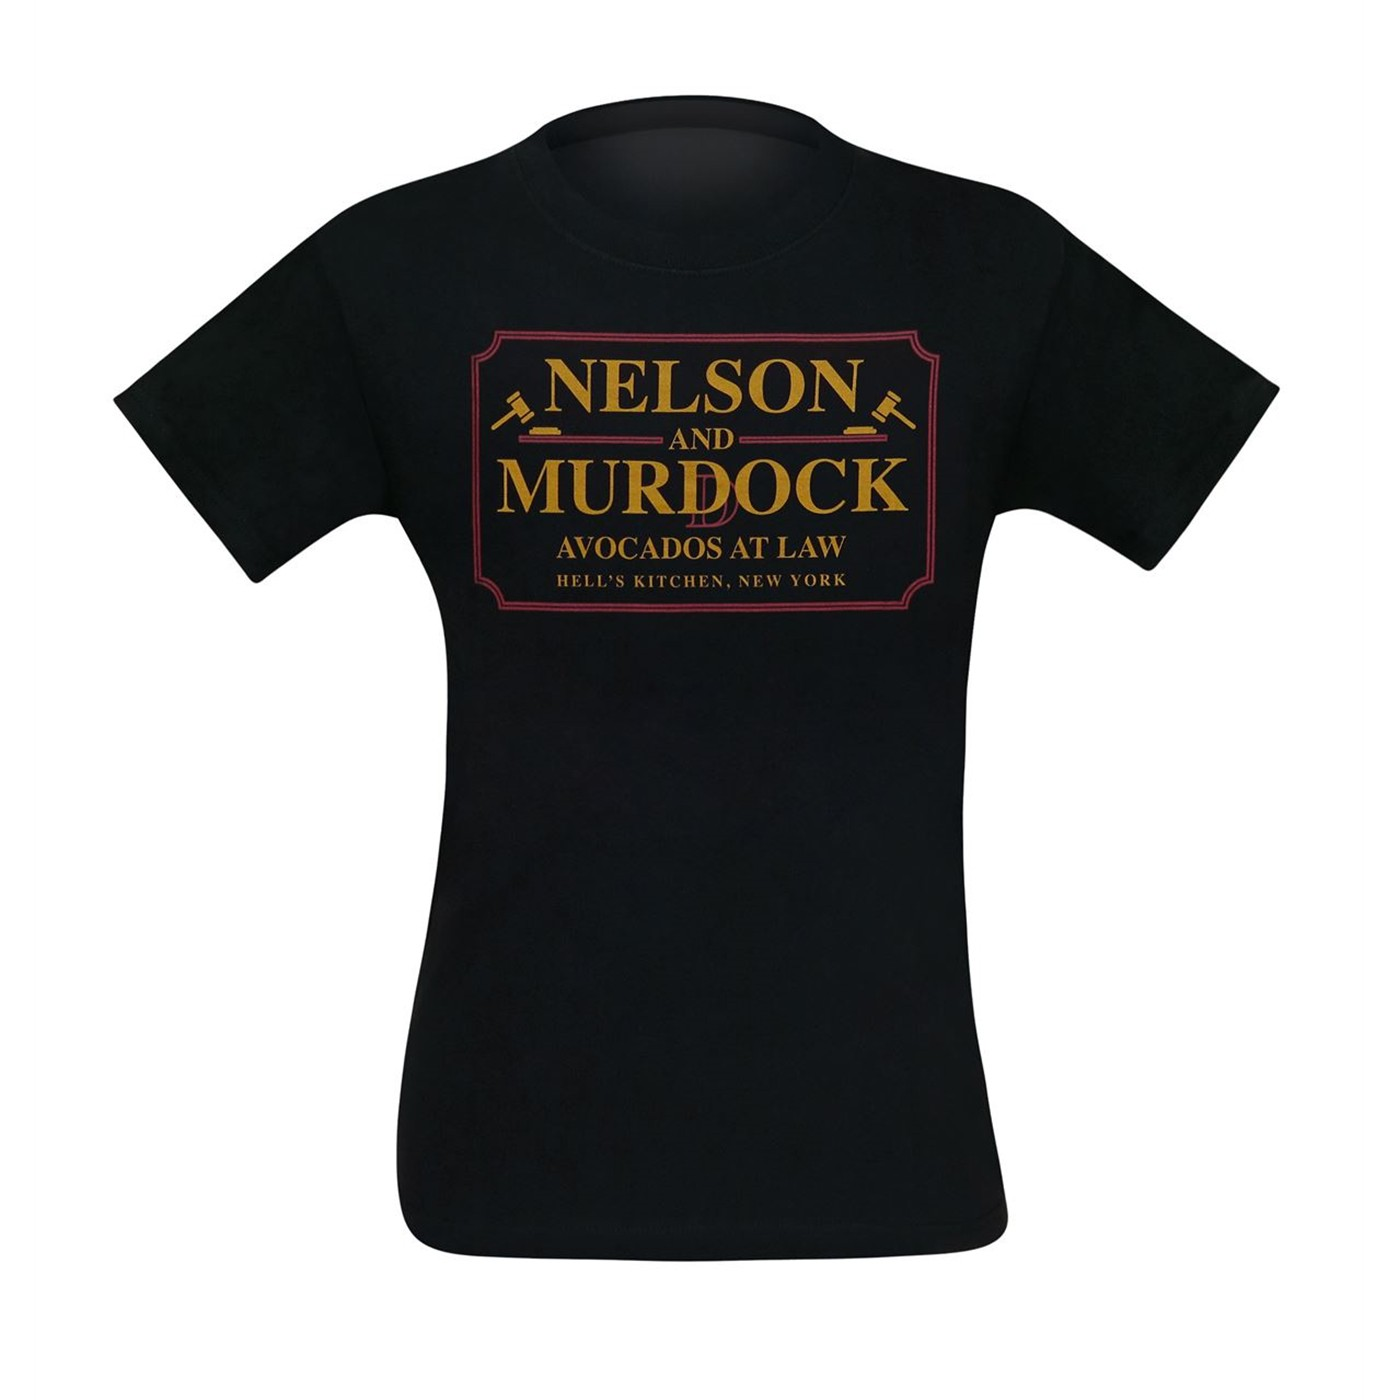 Nelson & Murdock Avocados at Law Men's T-Shirt